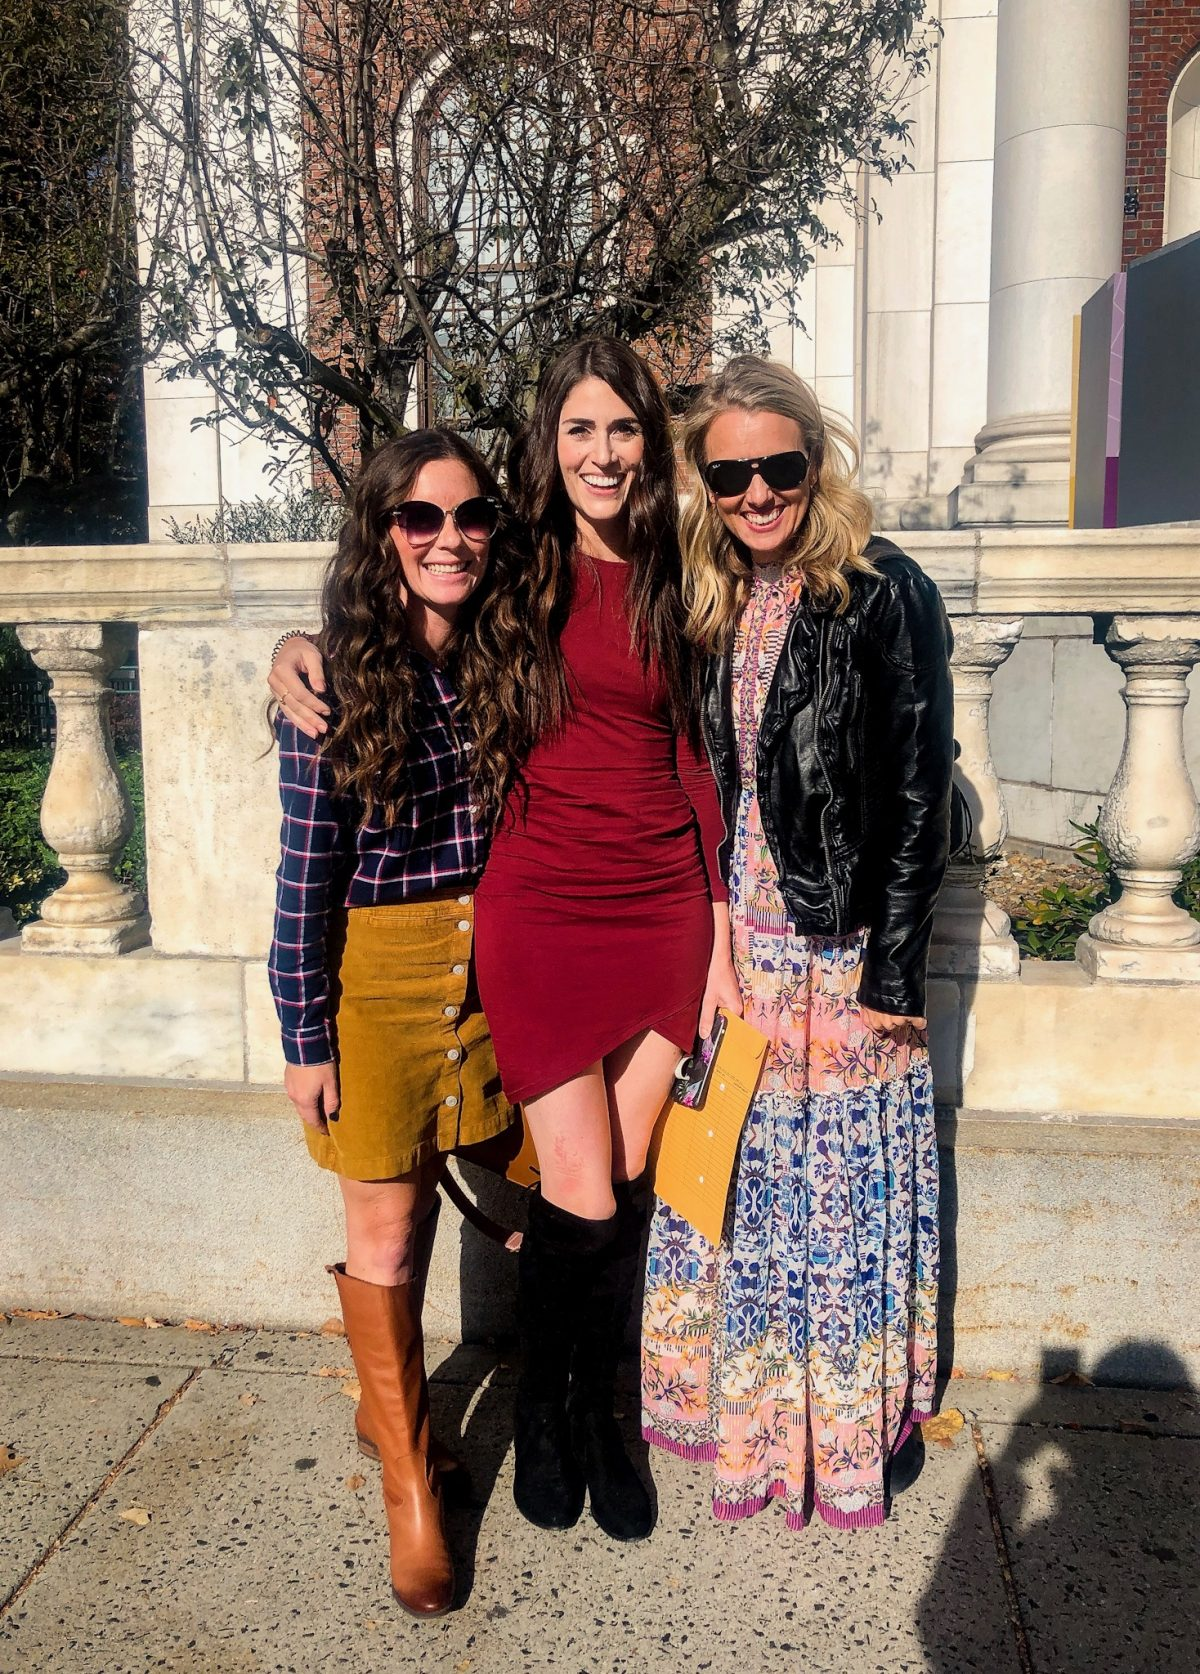 Connecticut bloggers Caitlin Houston, Kallie Branciforte, and Charlotte Smith